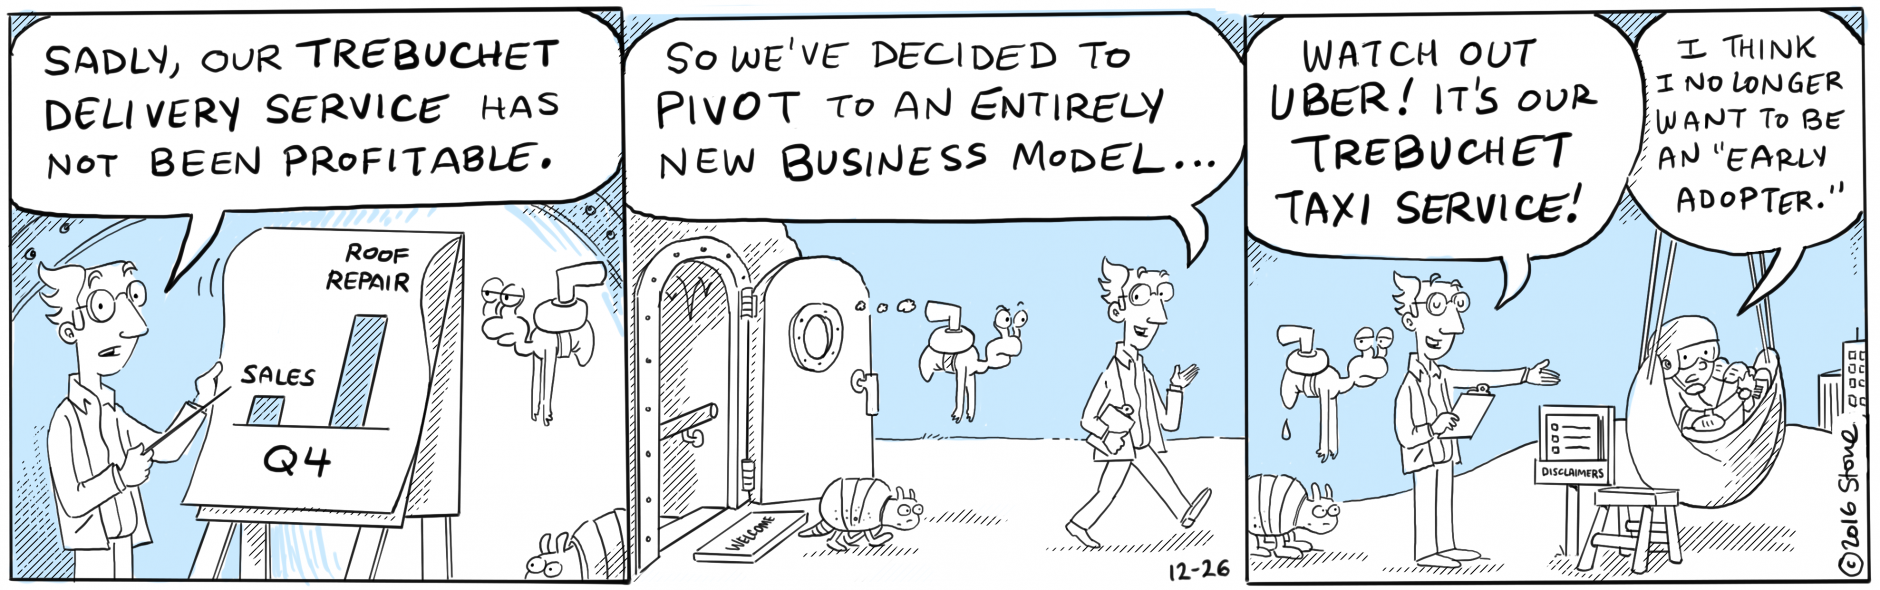 Watch out @JeffBezos! Zeno launches (literally) his new delivery service to compete with #Amazon's #Drone #PrimeAir.